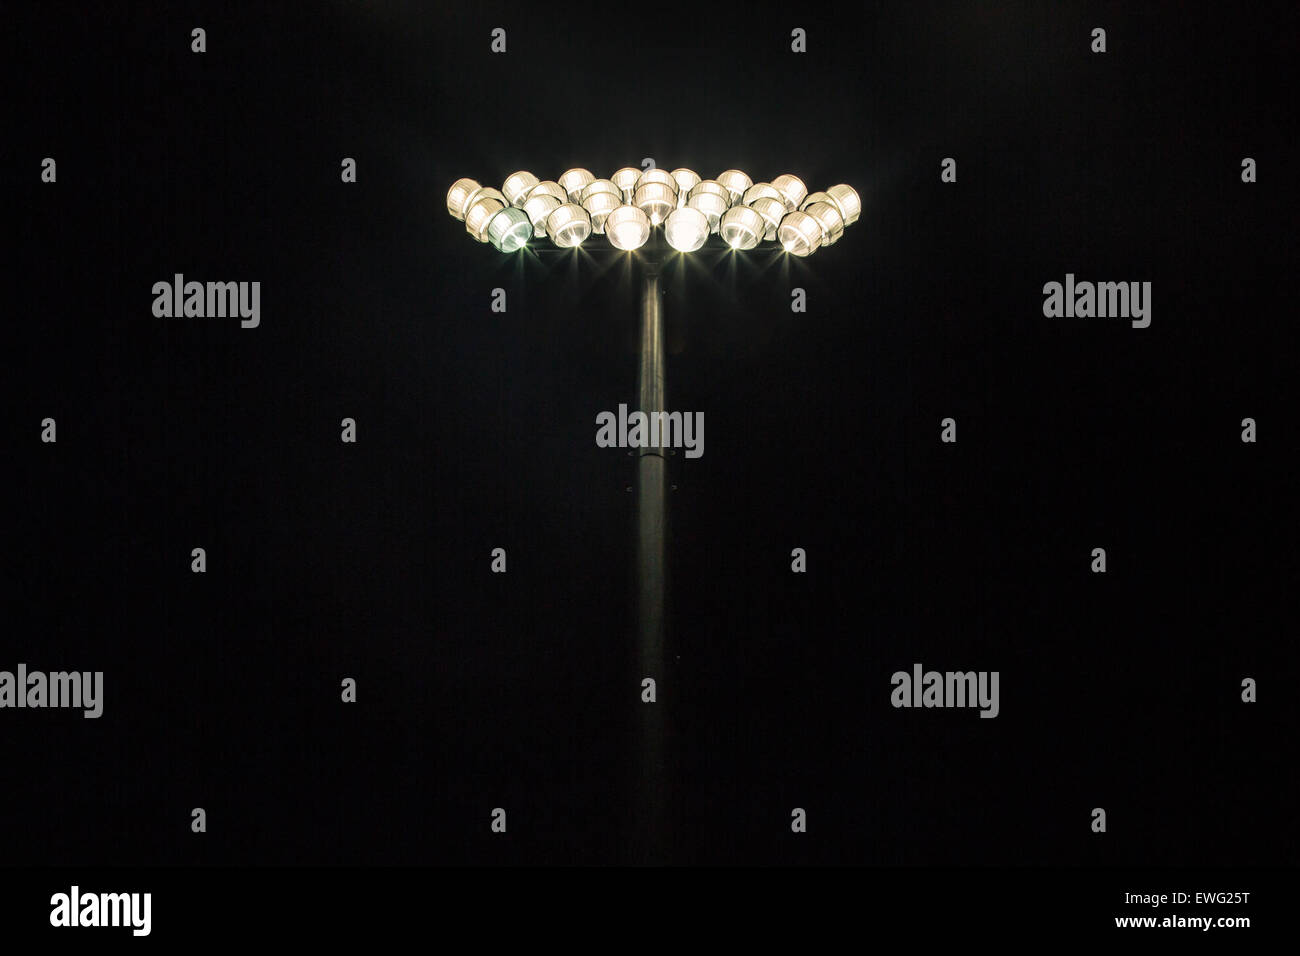 Bright Stadium Light on Black Background - Stock Image